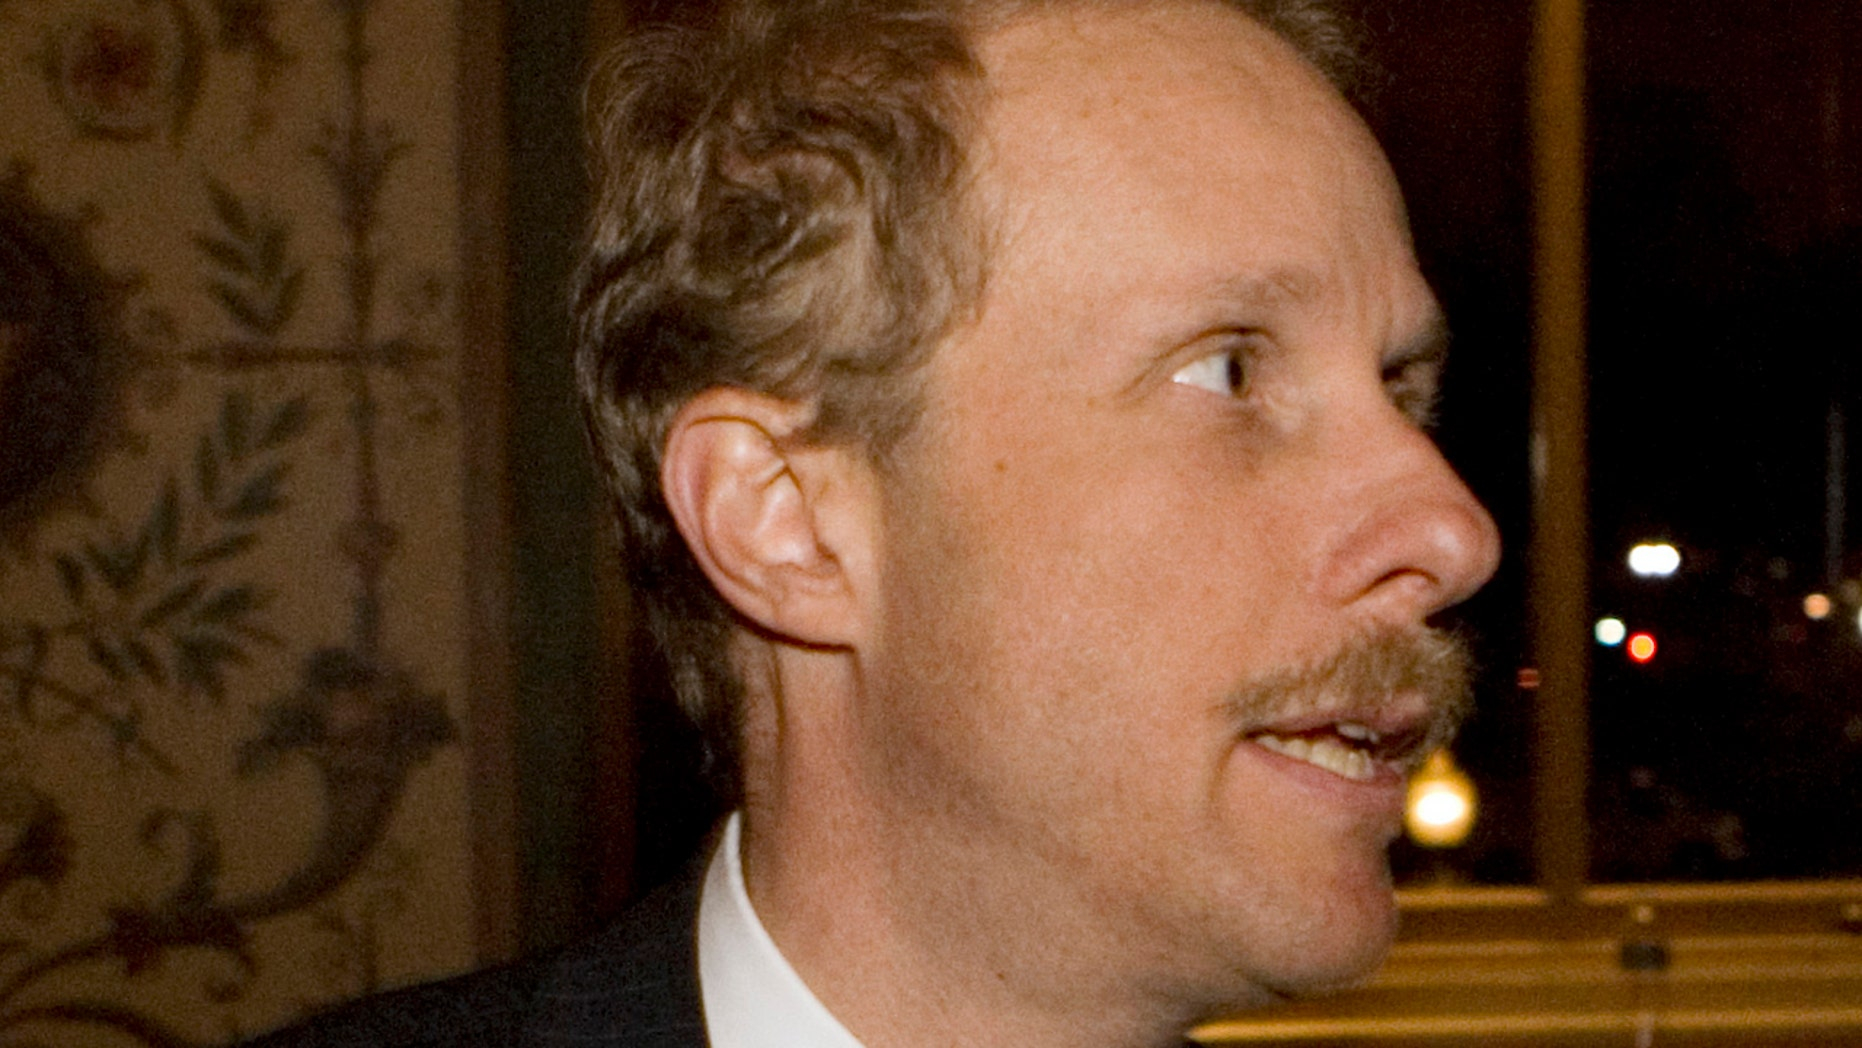 In this Dec. 11, 2008 file photo, Stephen Feinberg is seen on Capitol Hill in Washington.